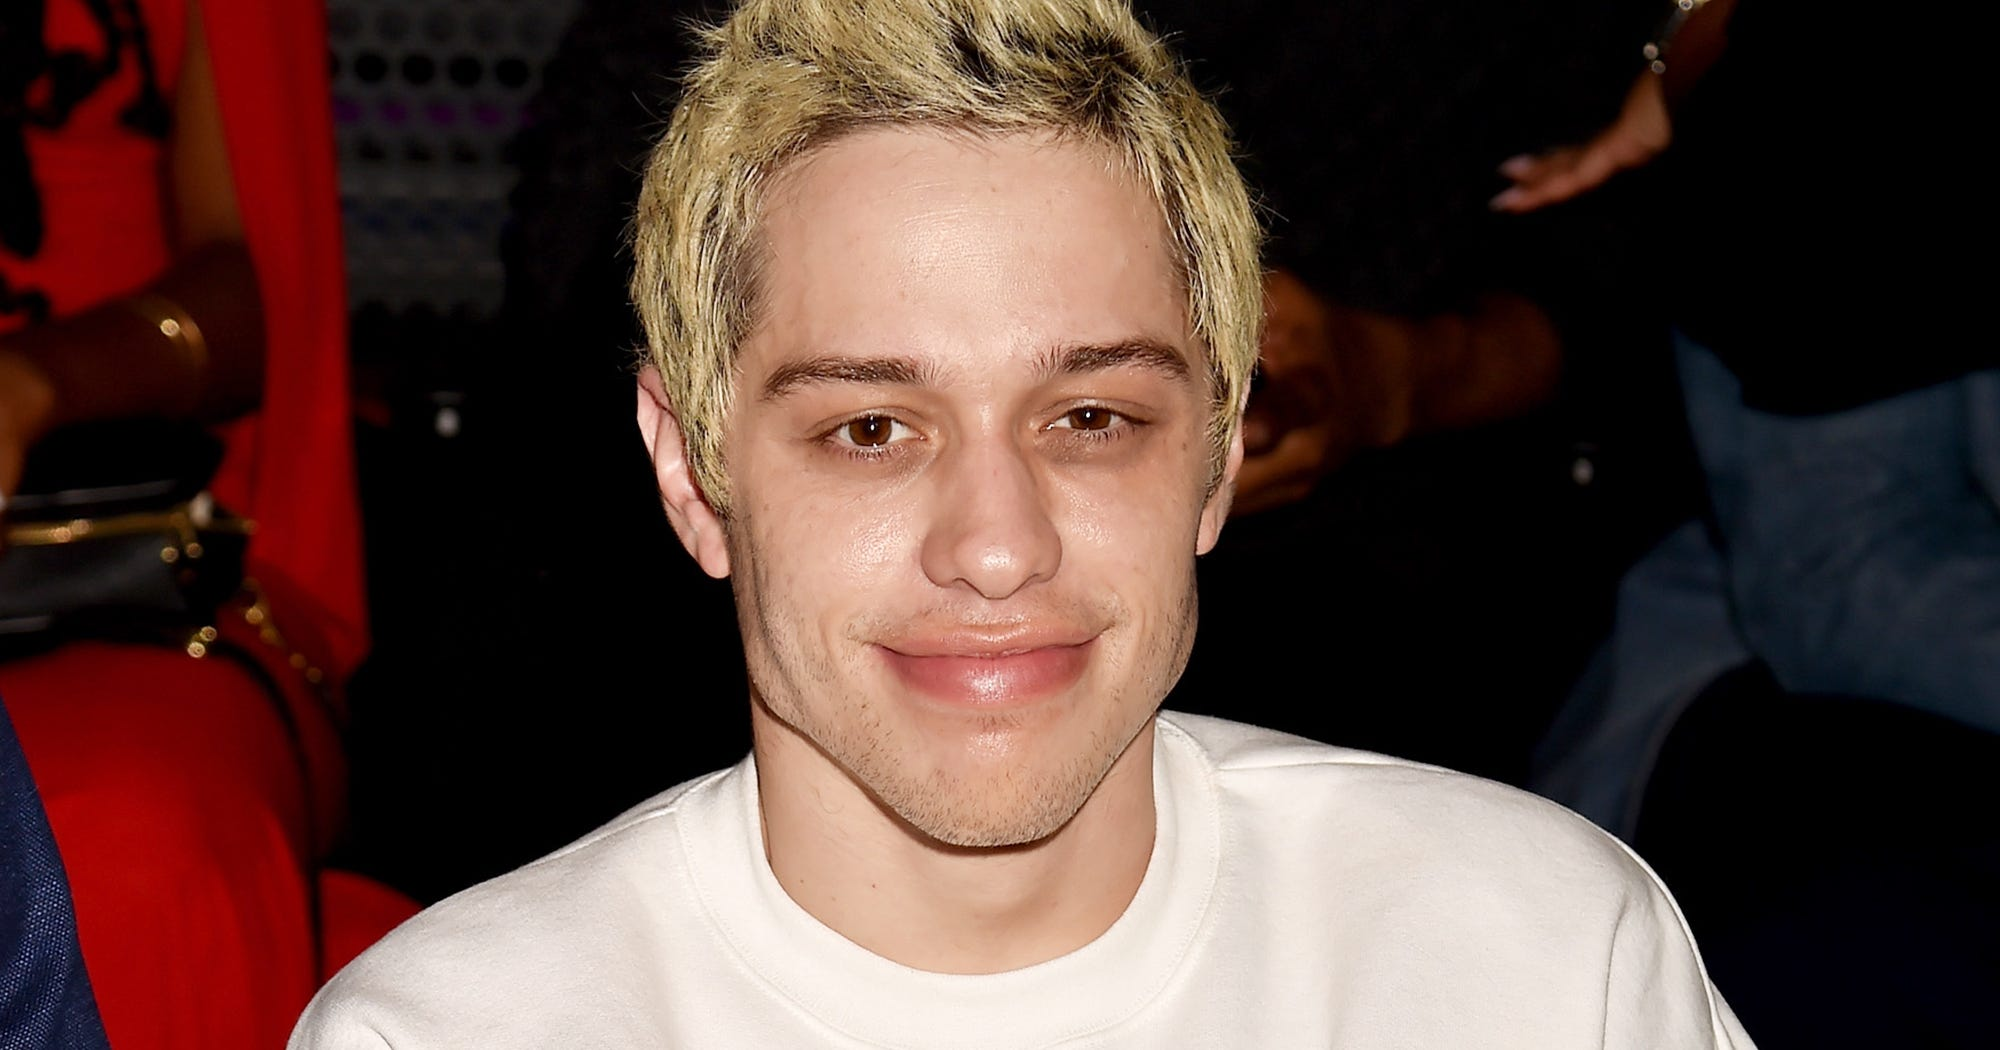 Pete Davidson Broke His Instagram Silence To Send A Clear Message